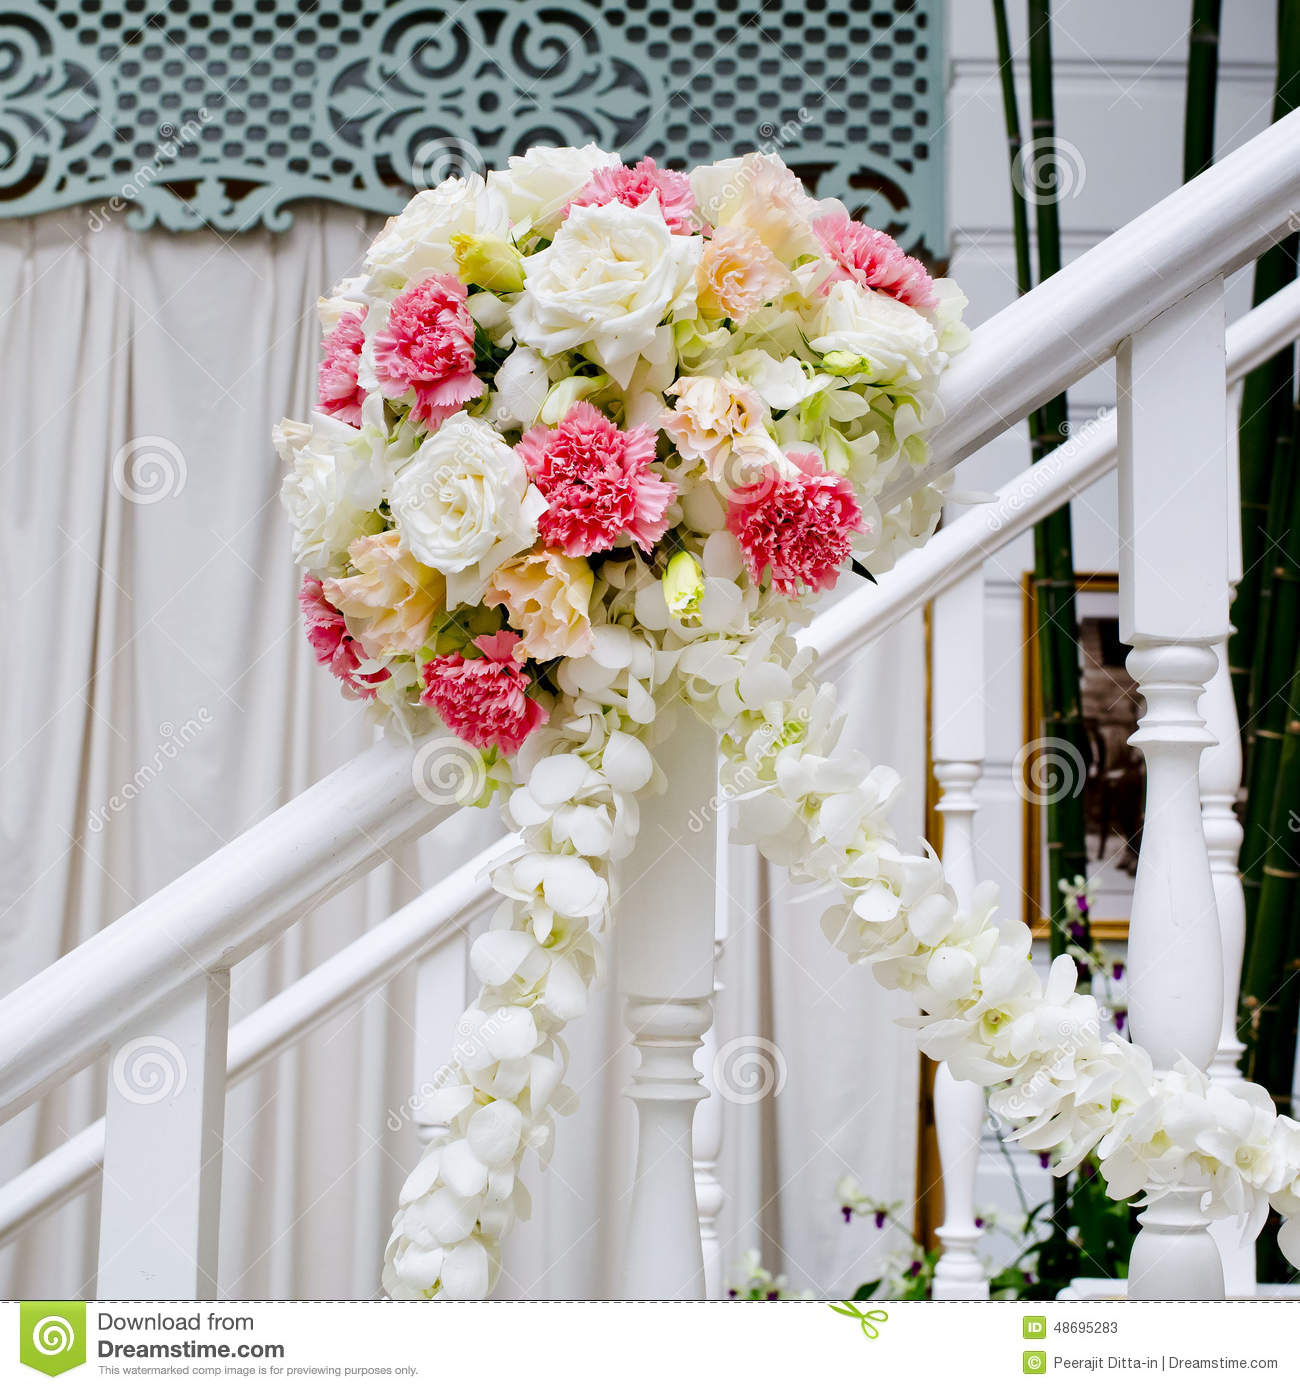 Beautiful Wedding Flower Decoration At Stairs Stock Image